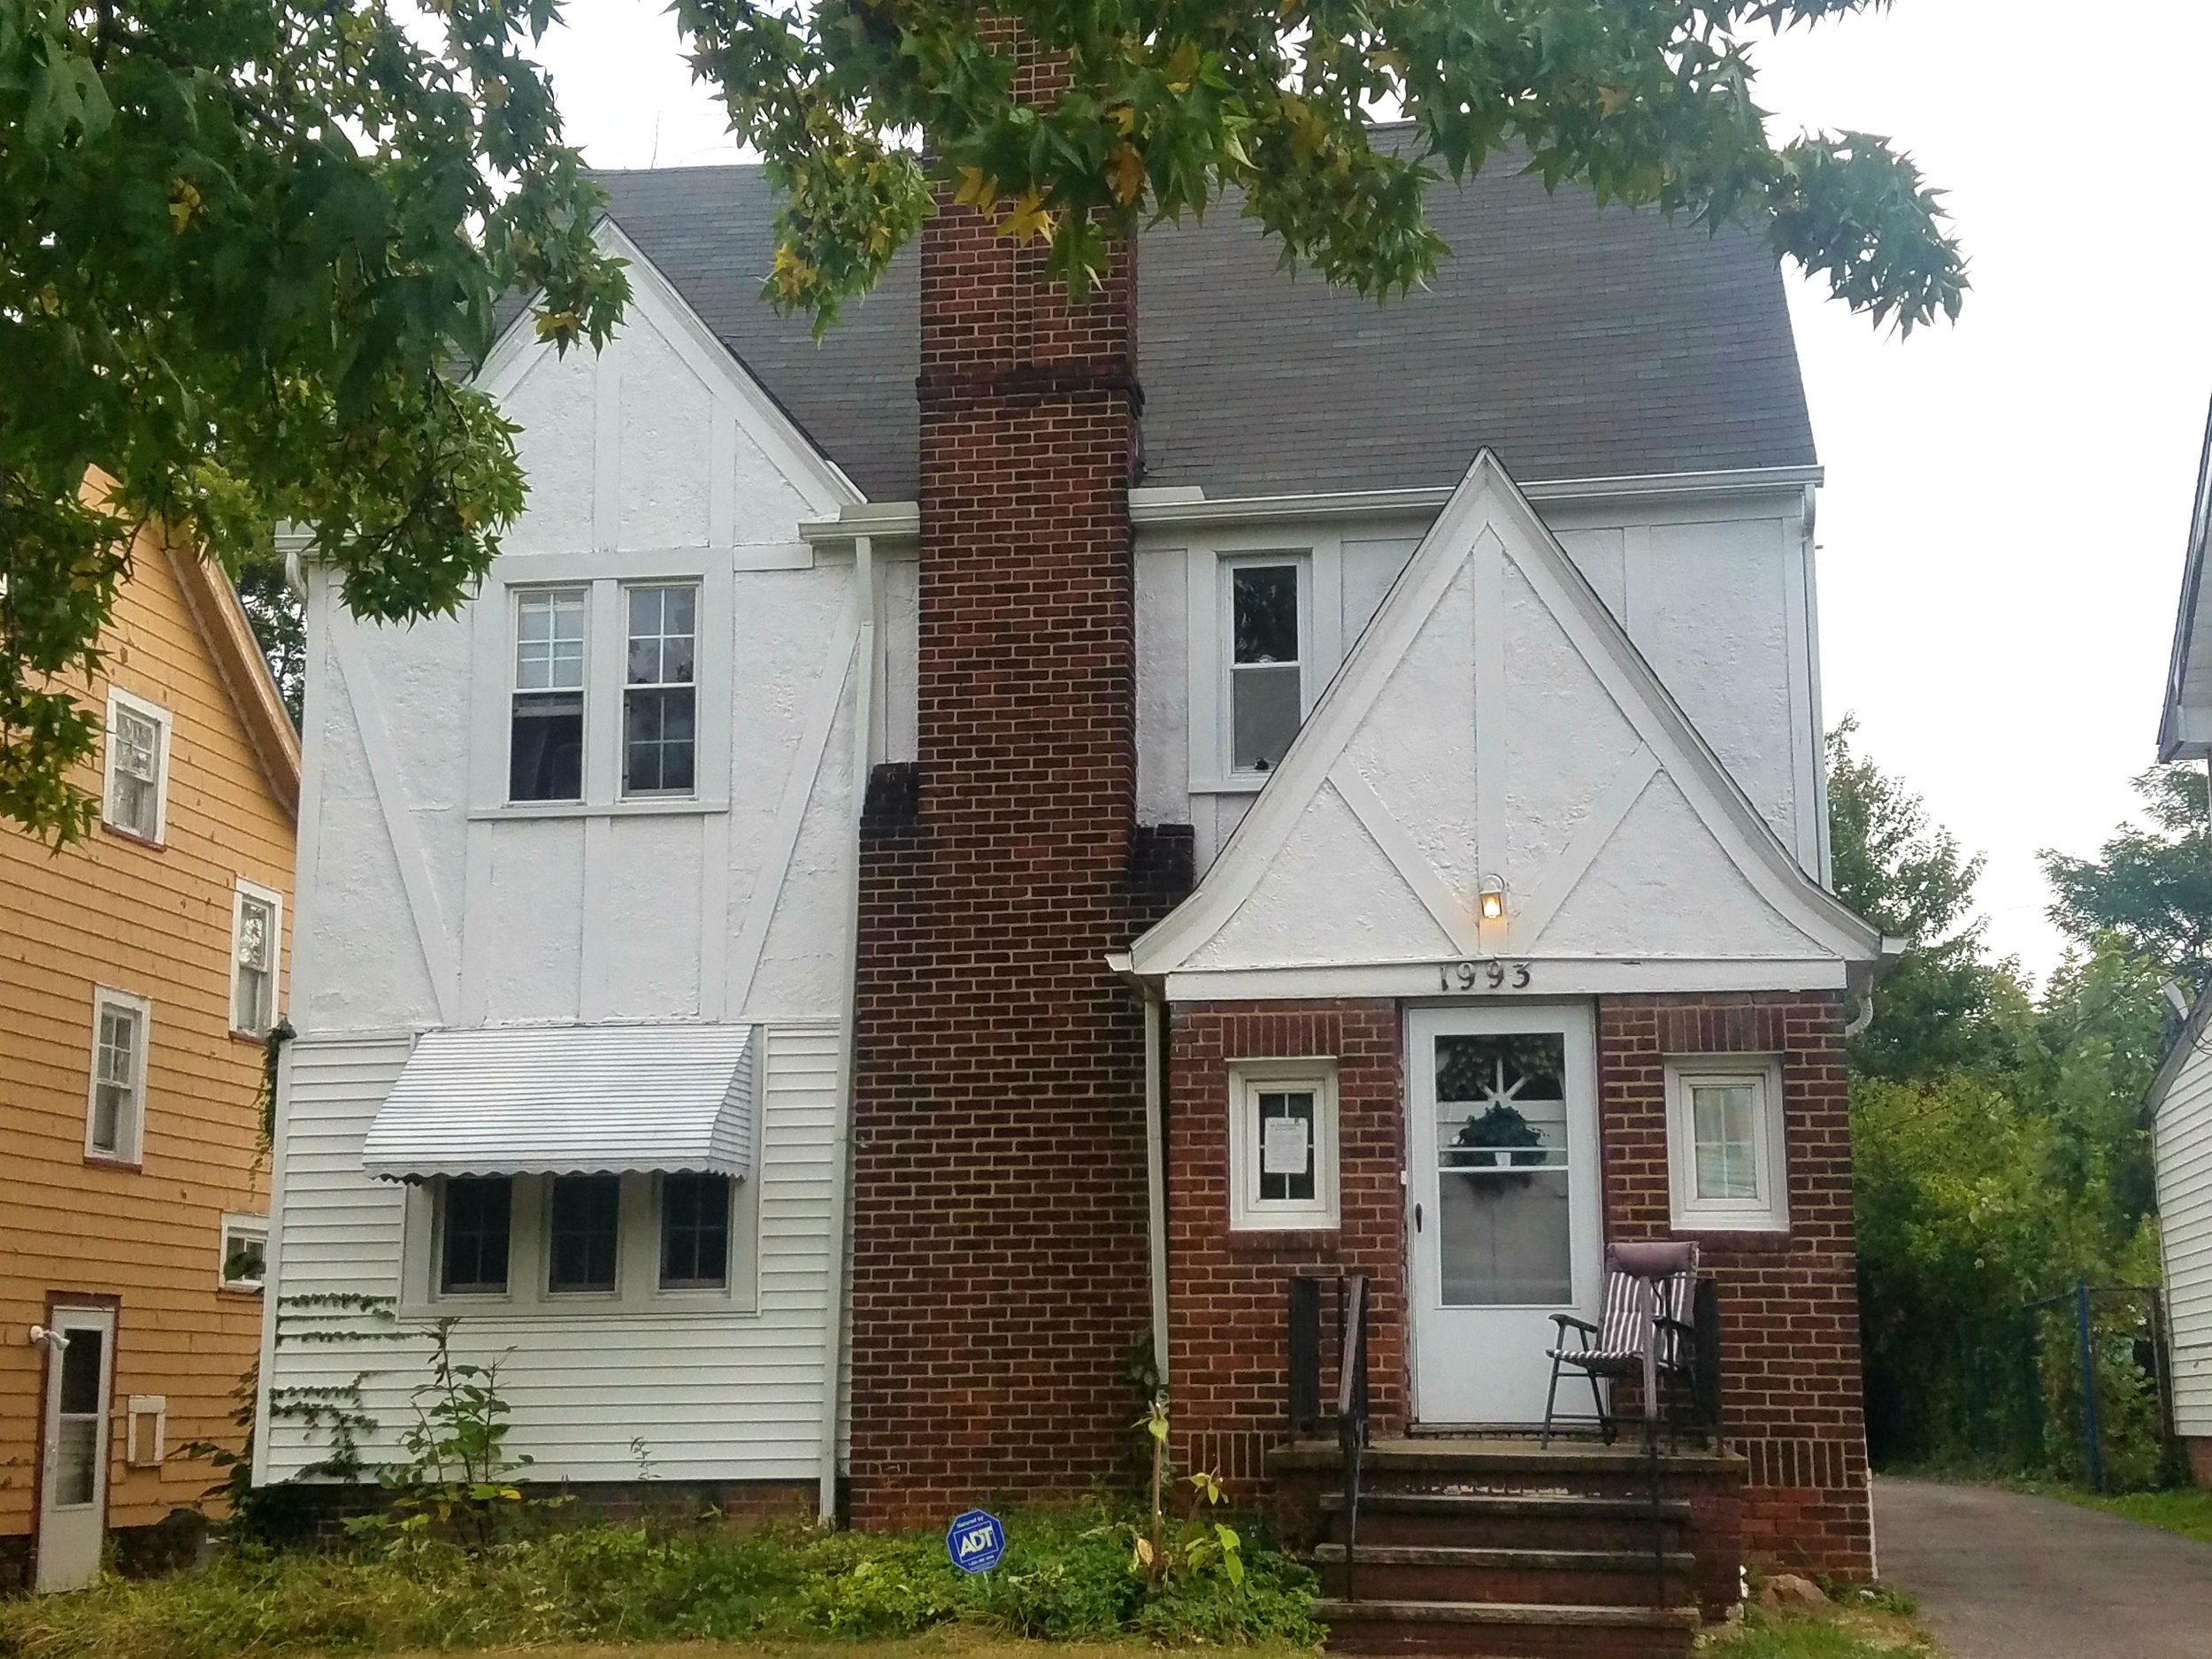 1993 Goodnor Rd., Cleveland Hts. | 3 bed 2 bath | 1,879 Sq. Ft. | $43,000